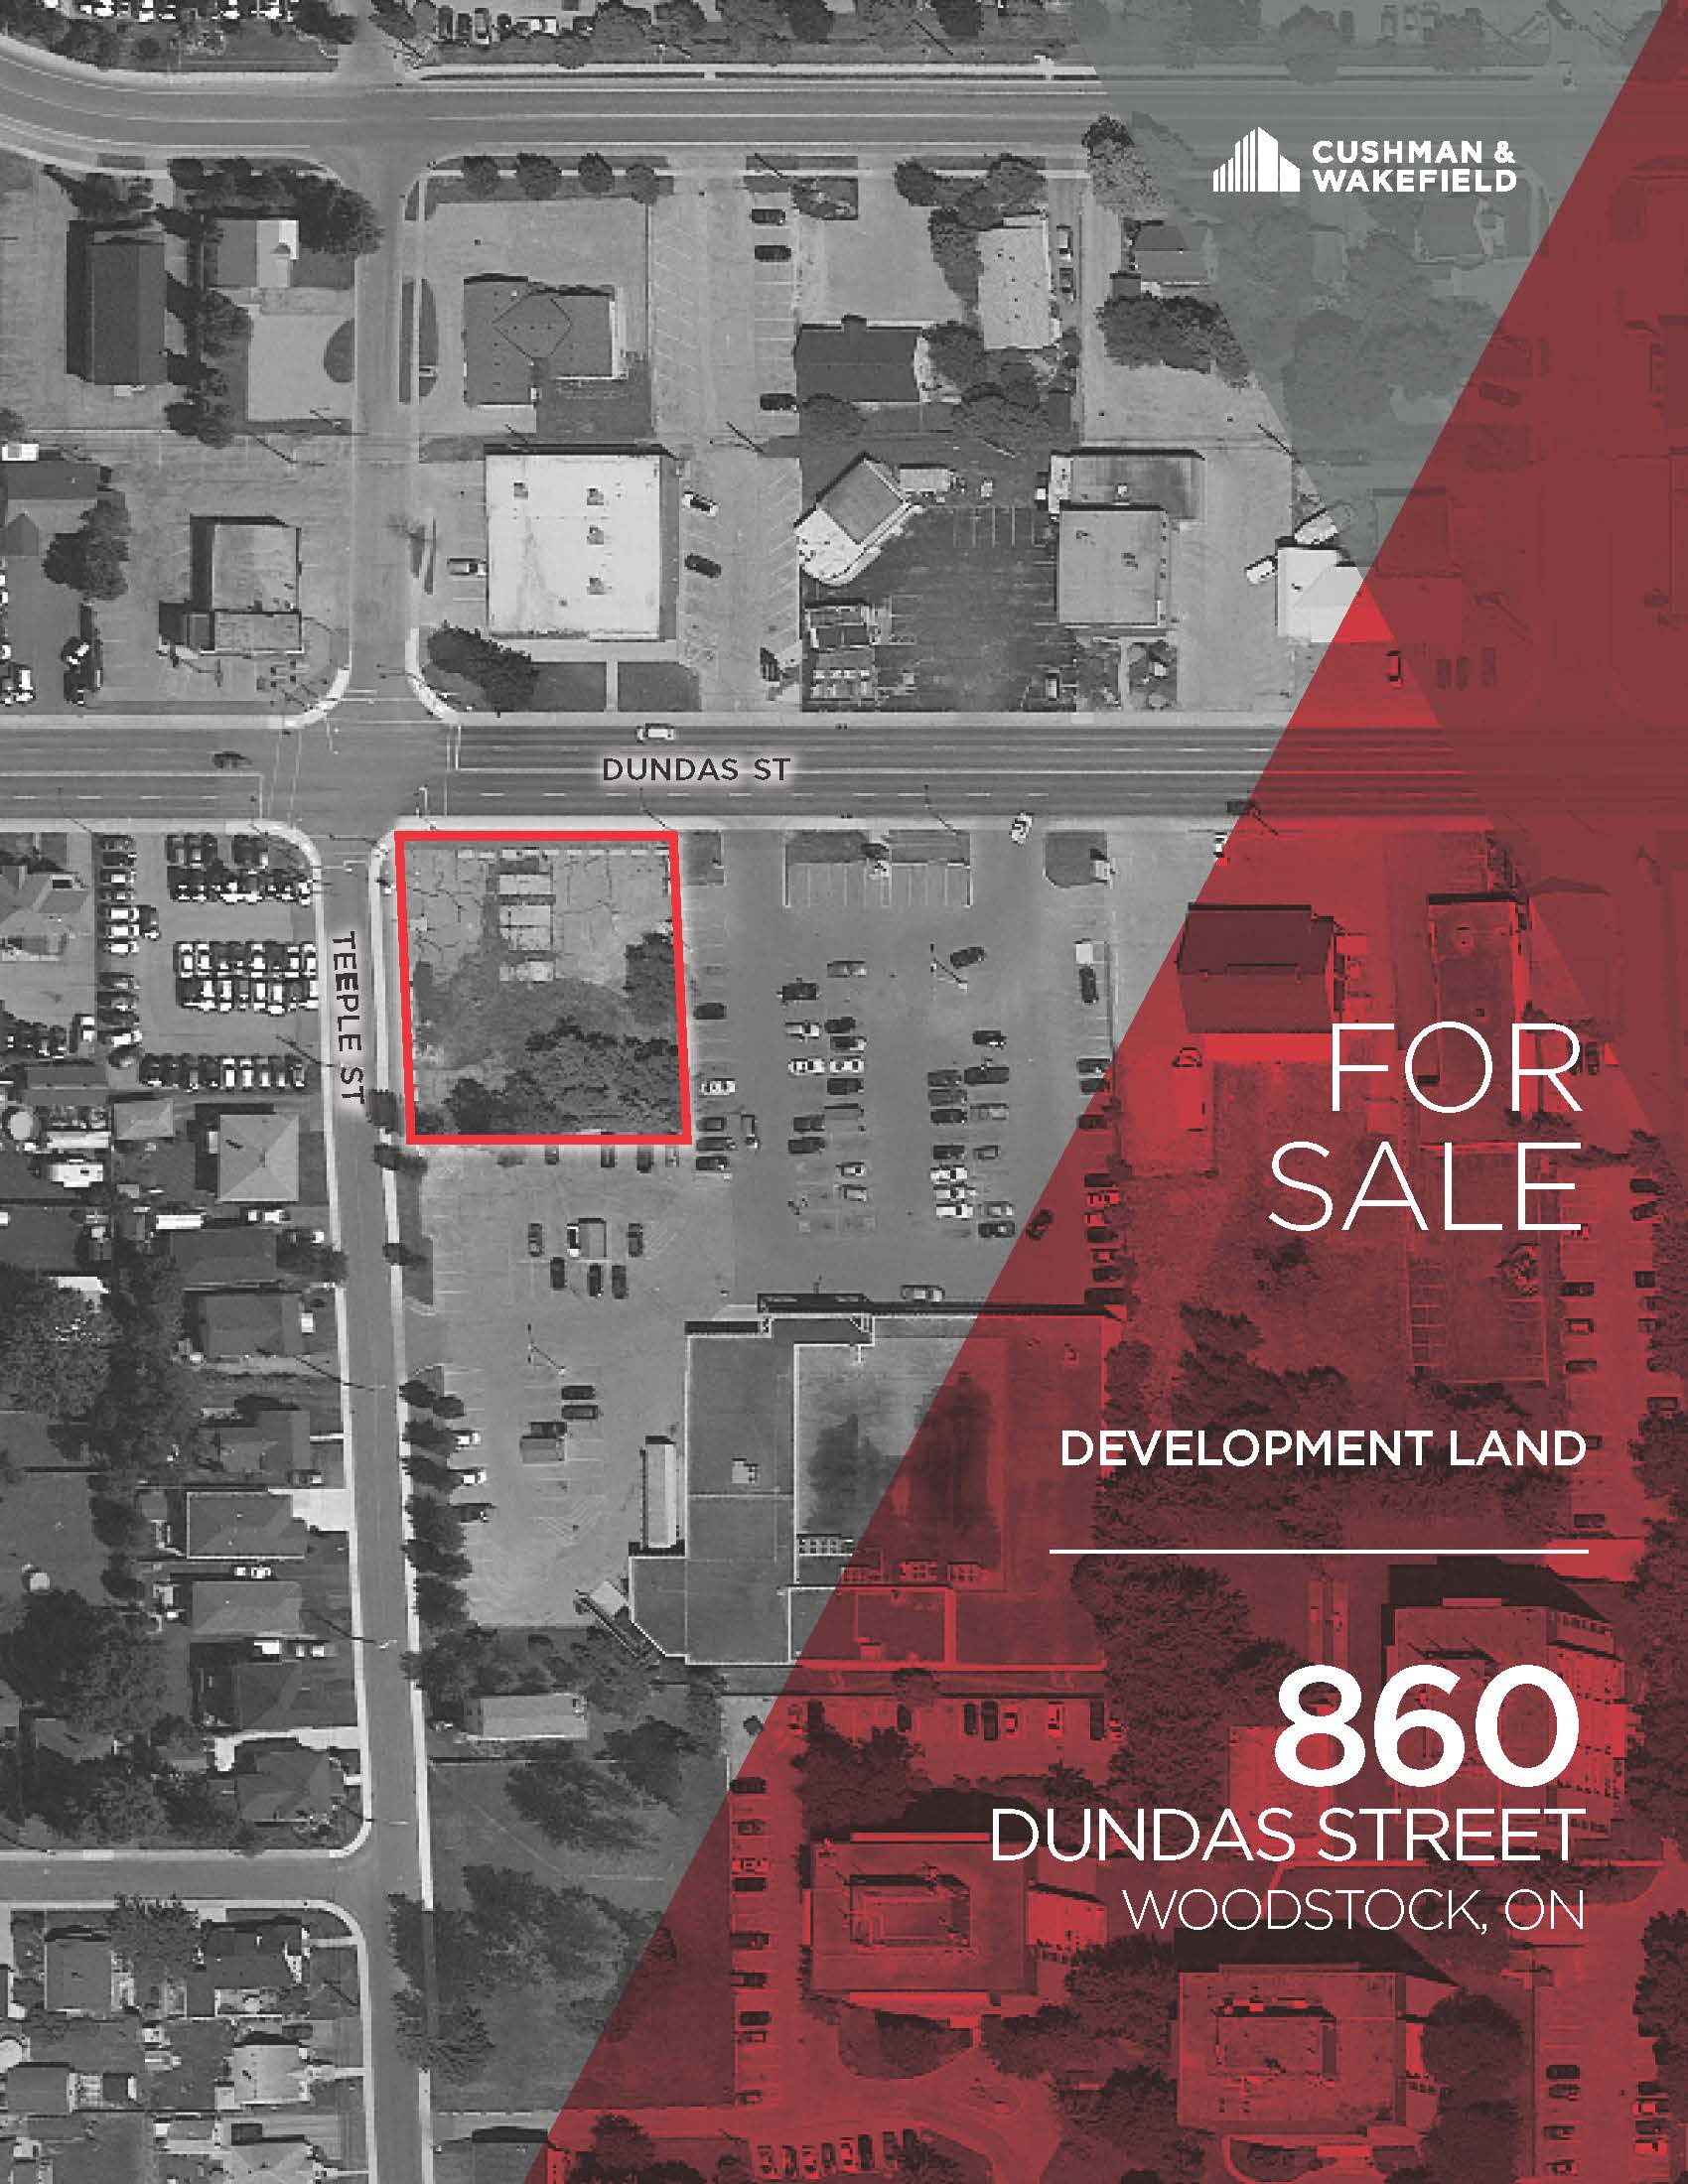 860 Dundas Street, Woodstock | Development Land for Sale